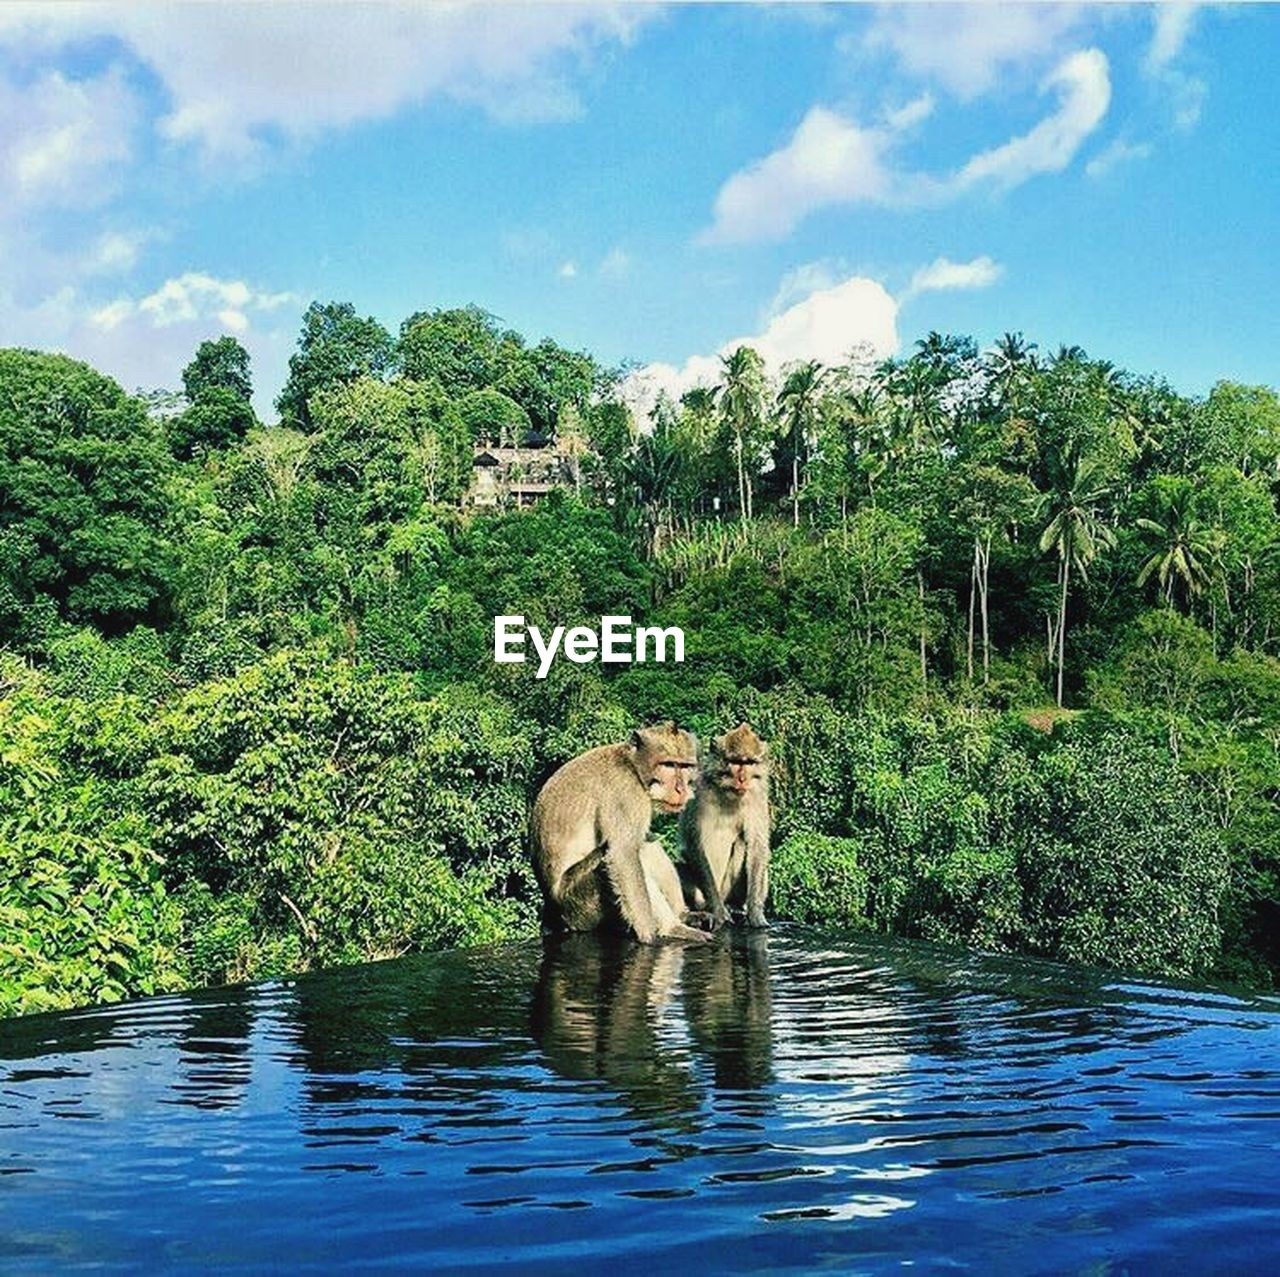 tree, water, mammal, sky, nature, animal themes, animals in the wild, outdoors, day, no people, green color, cloud - sky, growth, elephant, full length, plant, standing, safari animals, beauty in nature